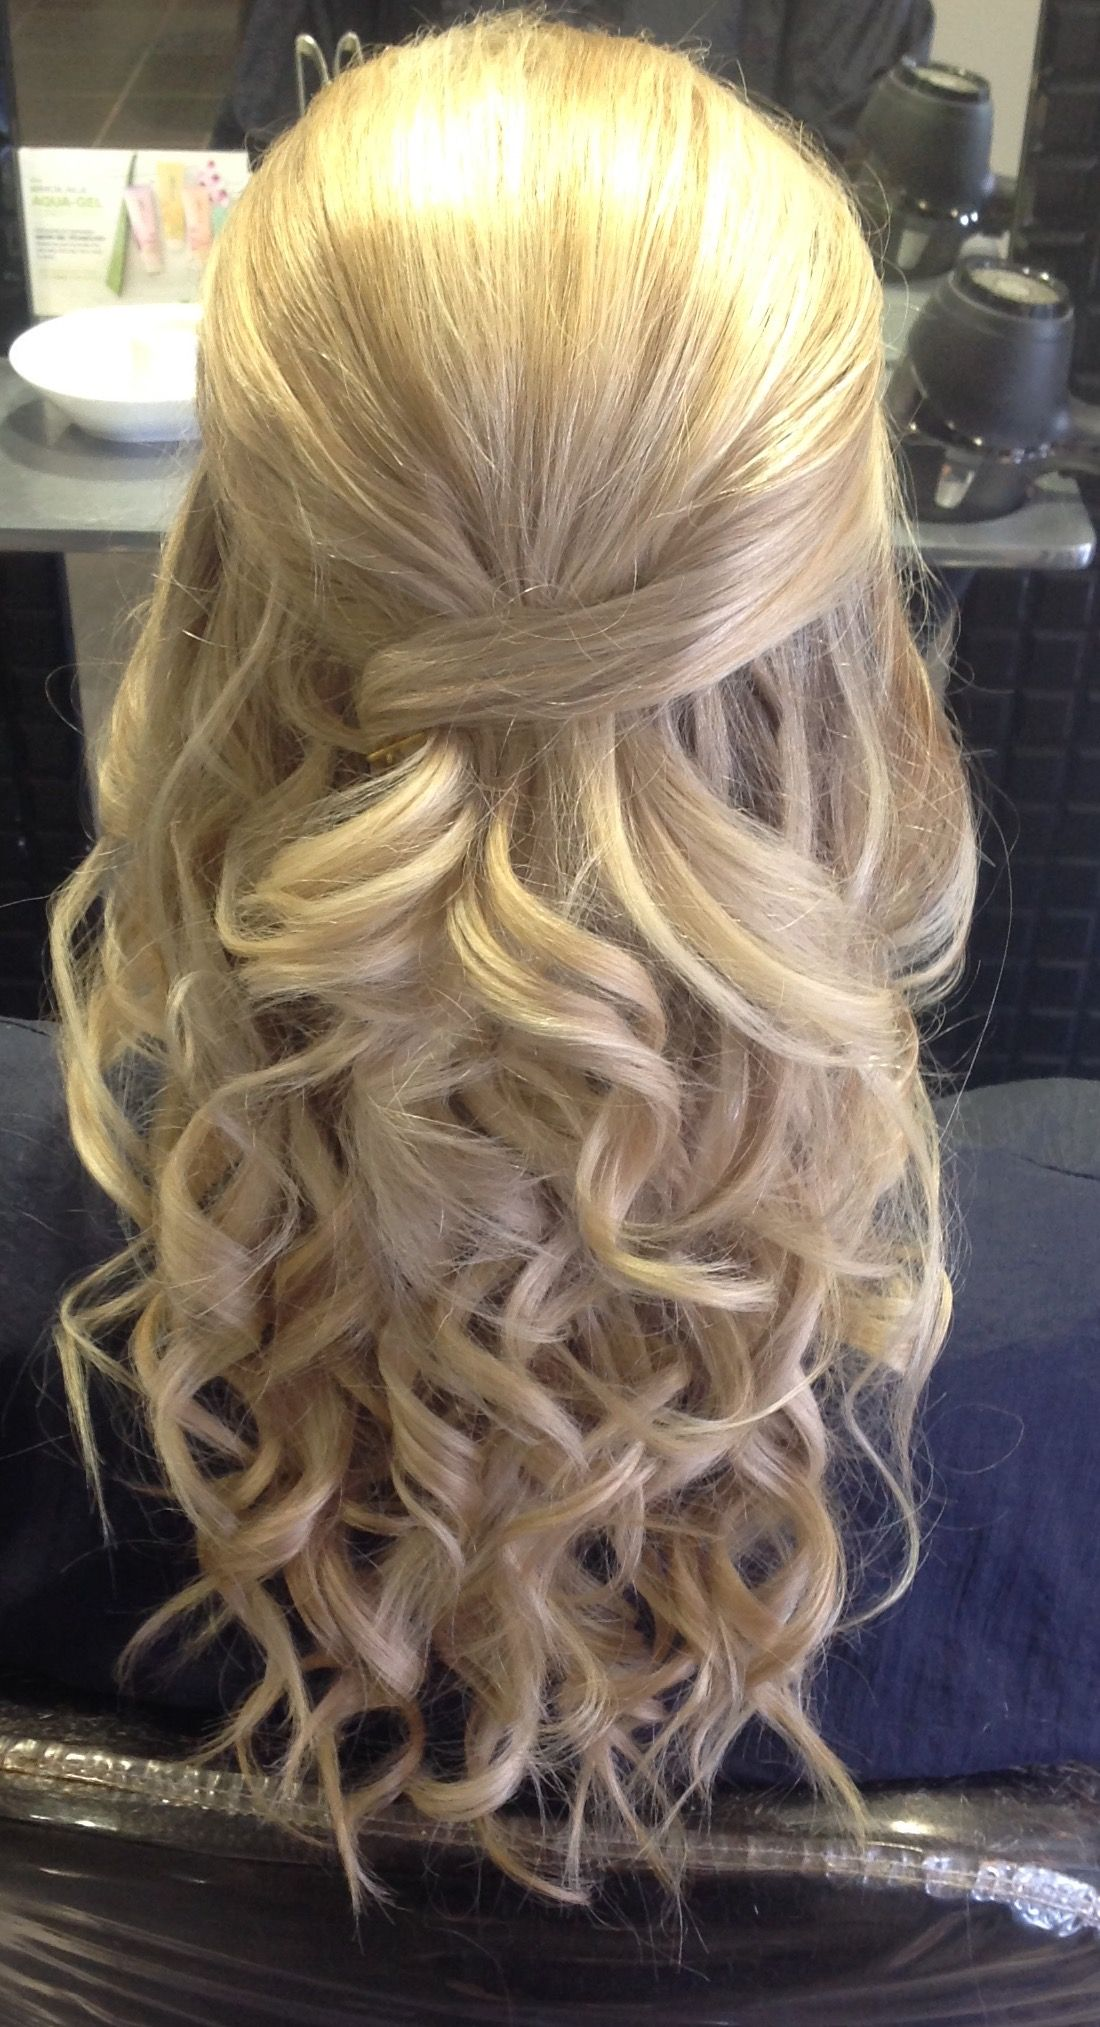 Caprious creations prom hair up hair up dous pinterest prom hair